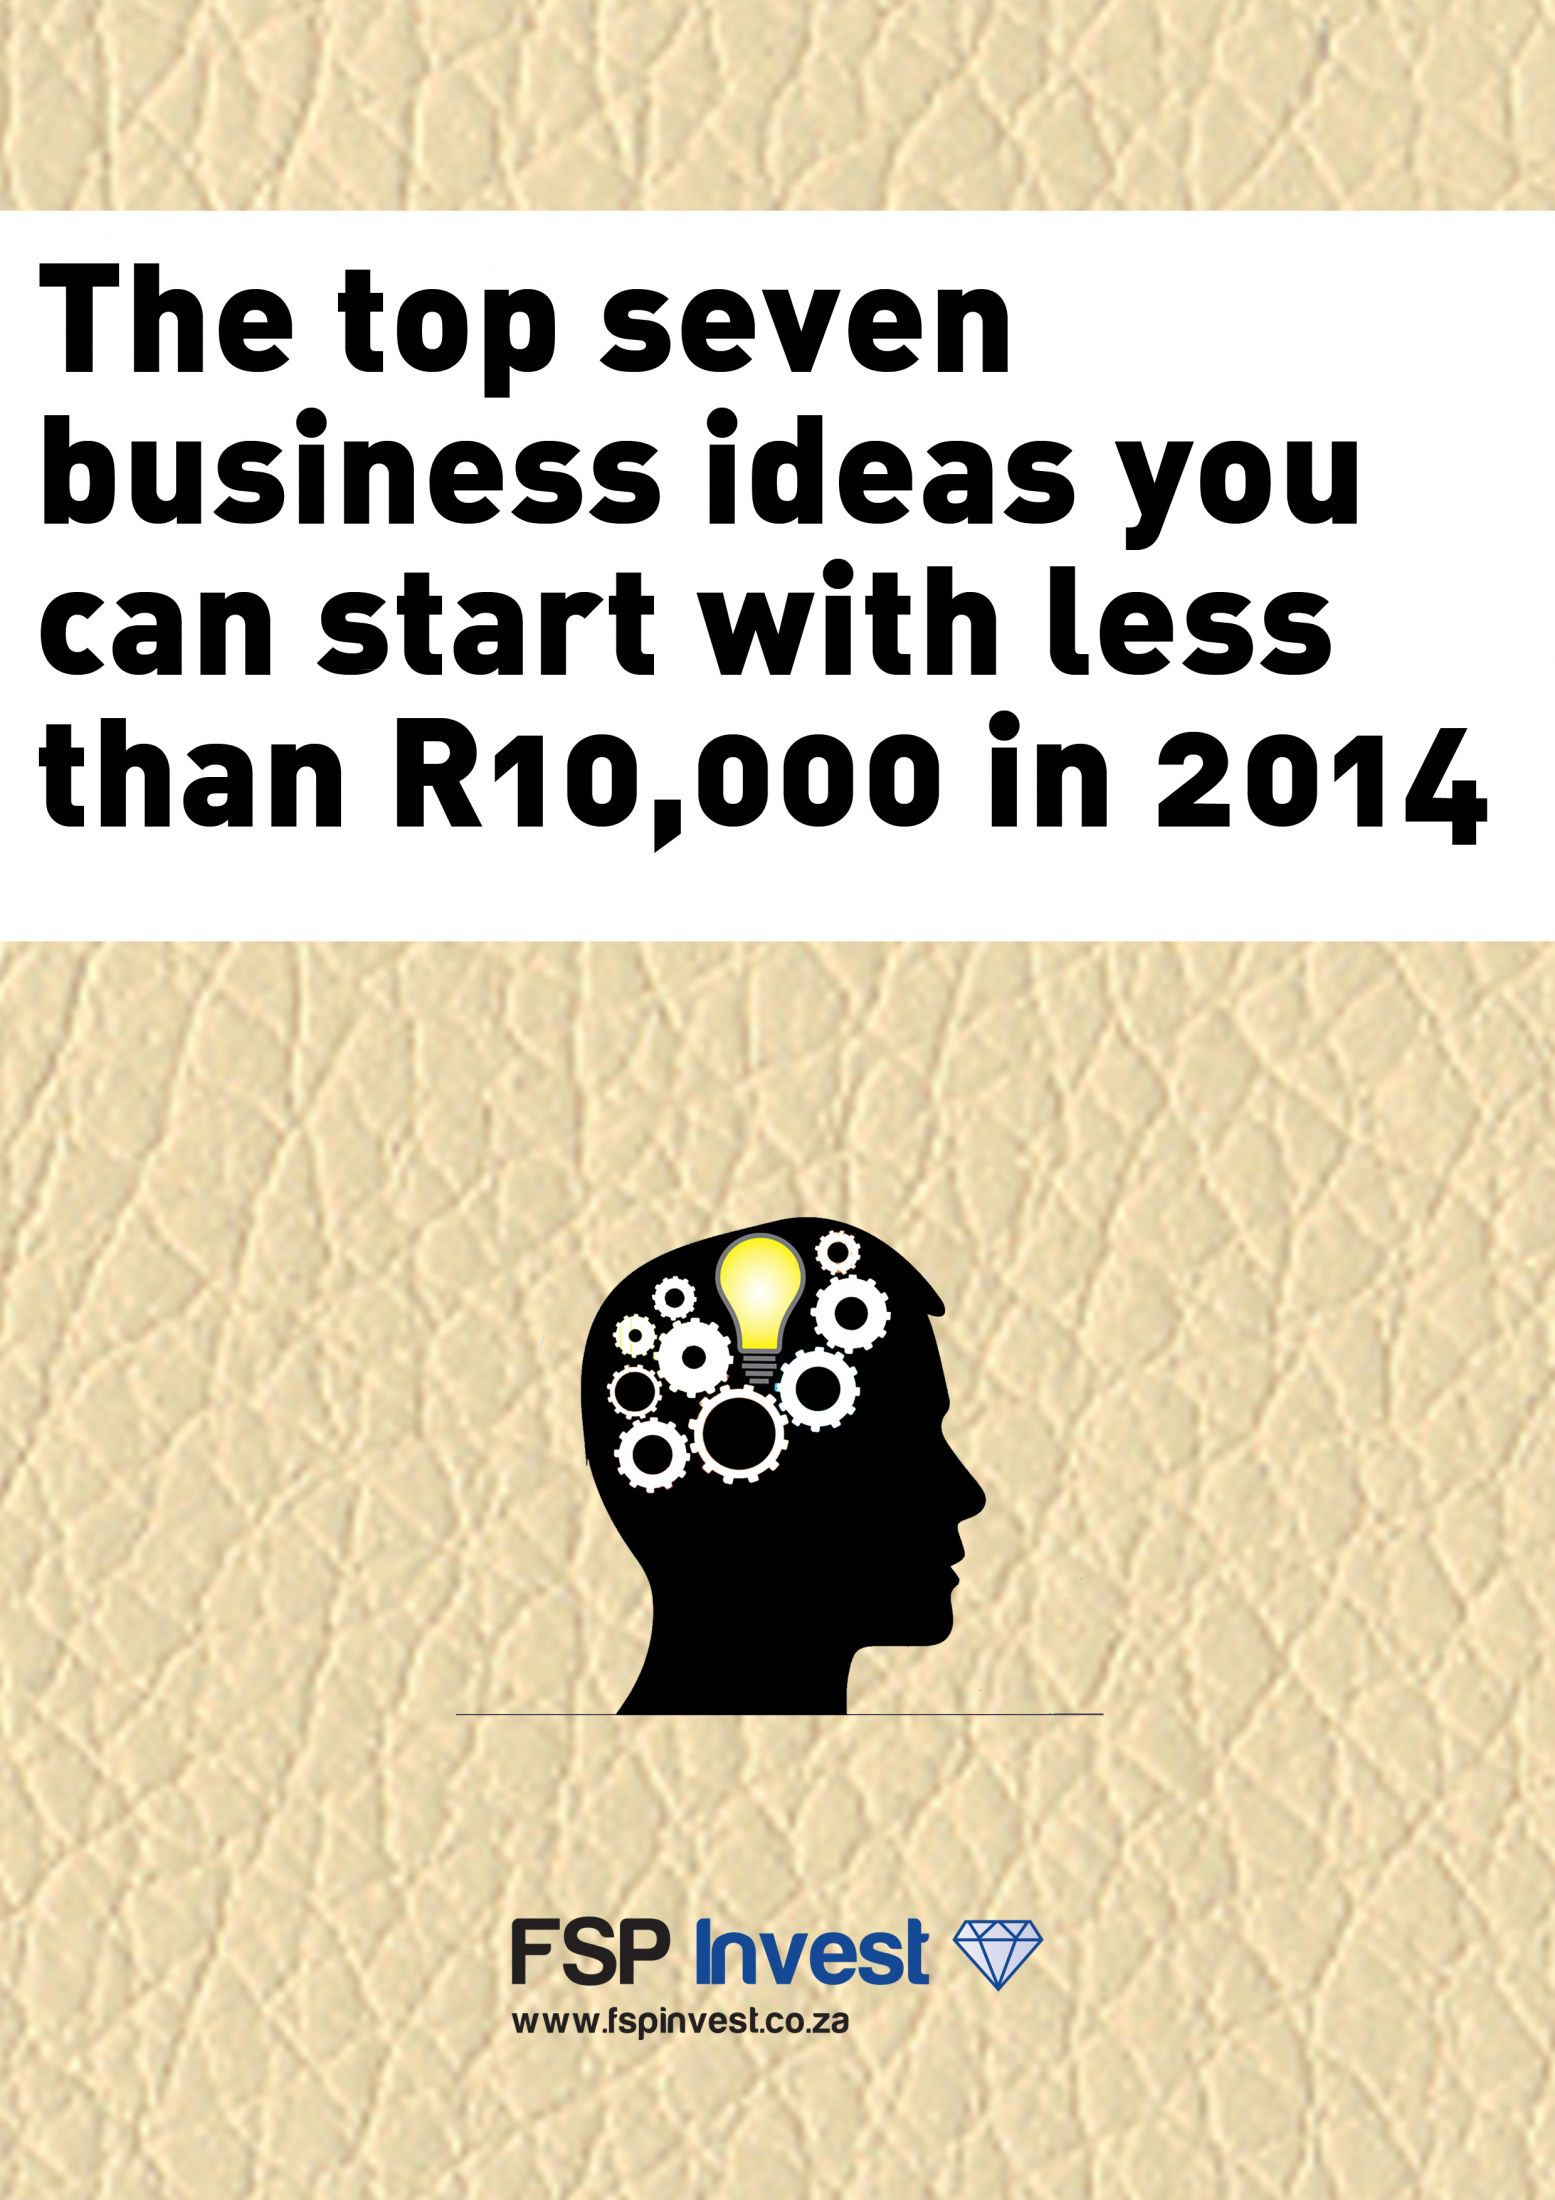 Top seven business ideas you can start with less than R10